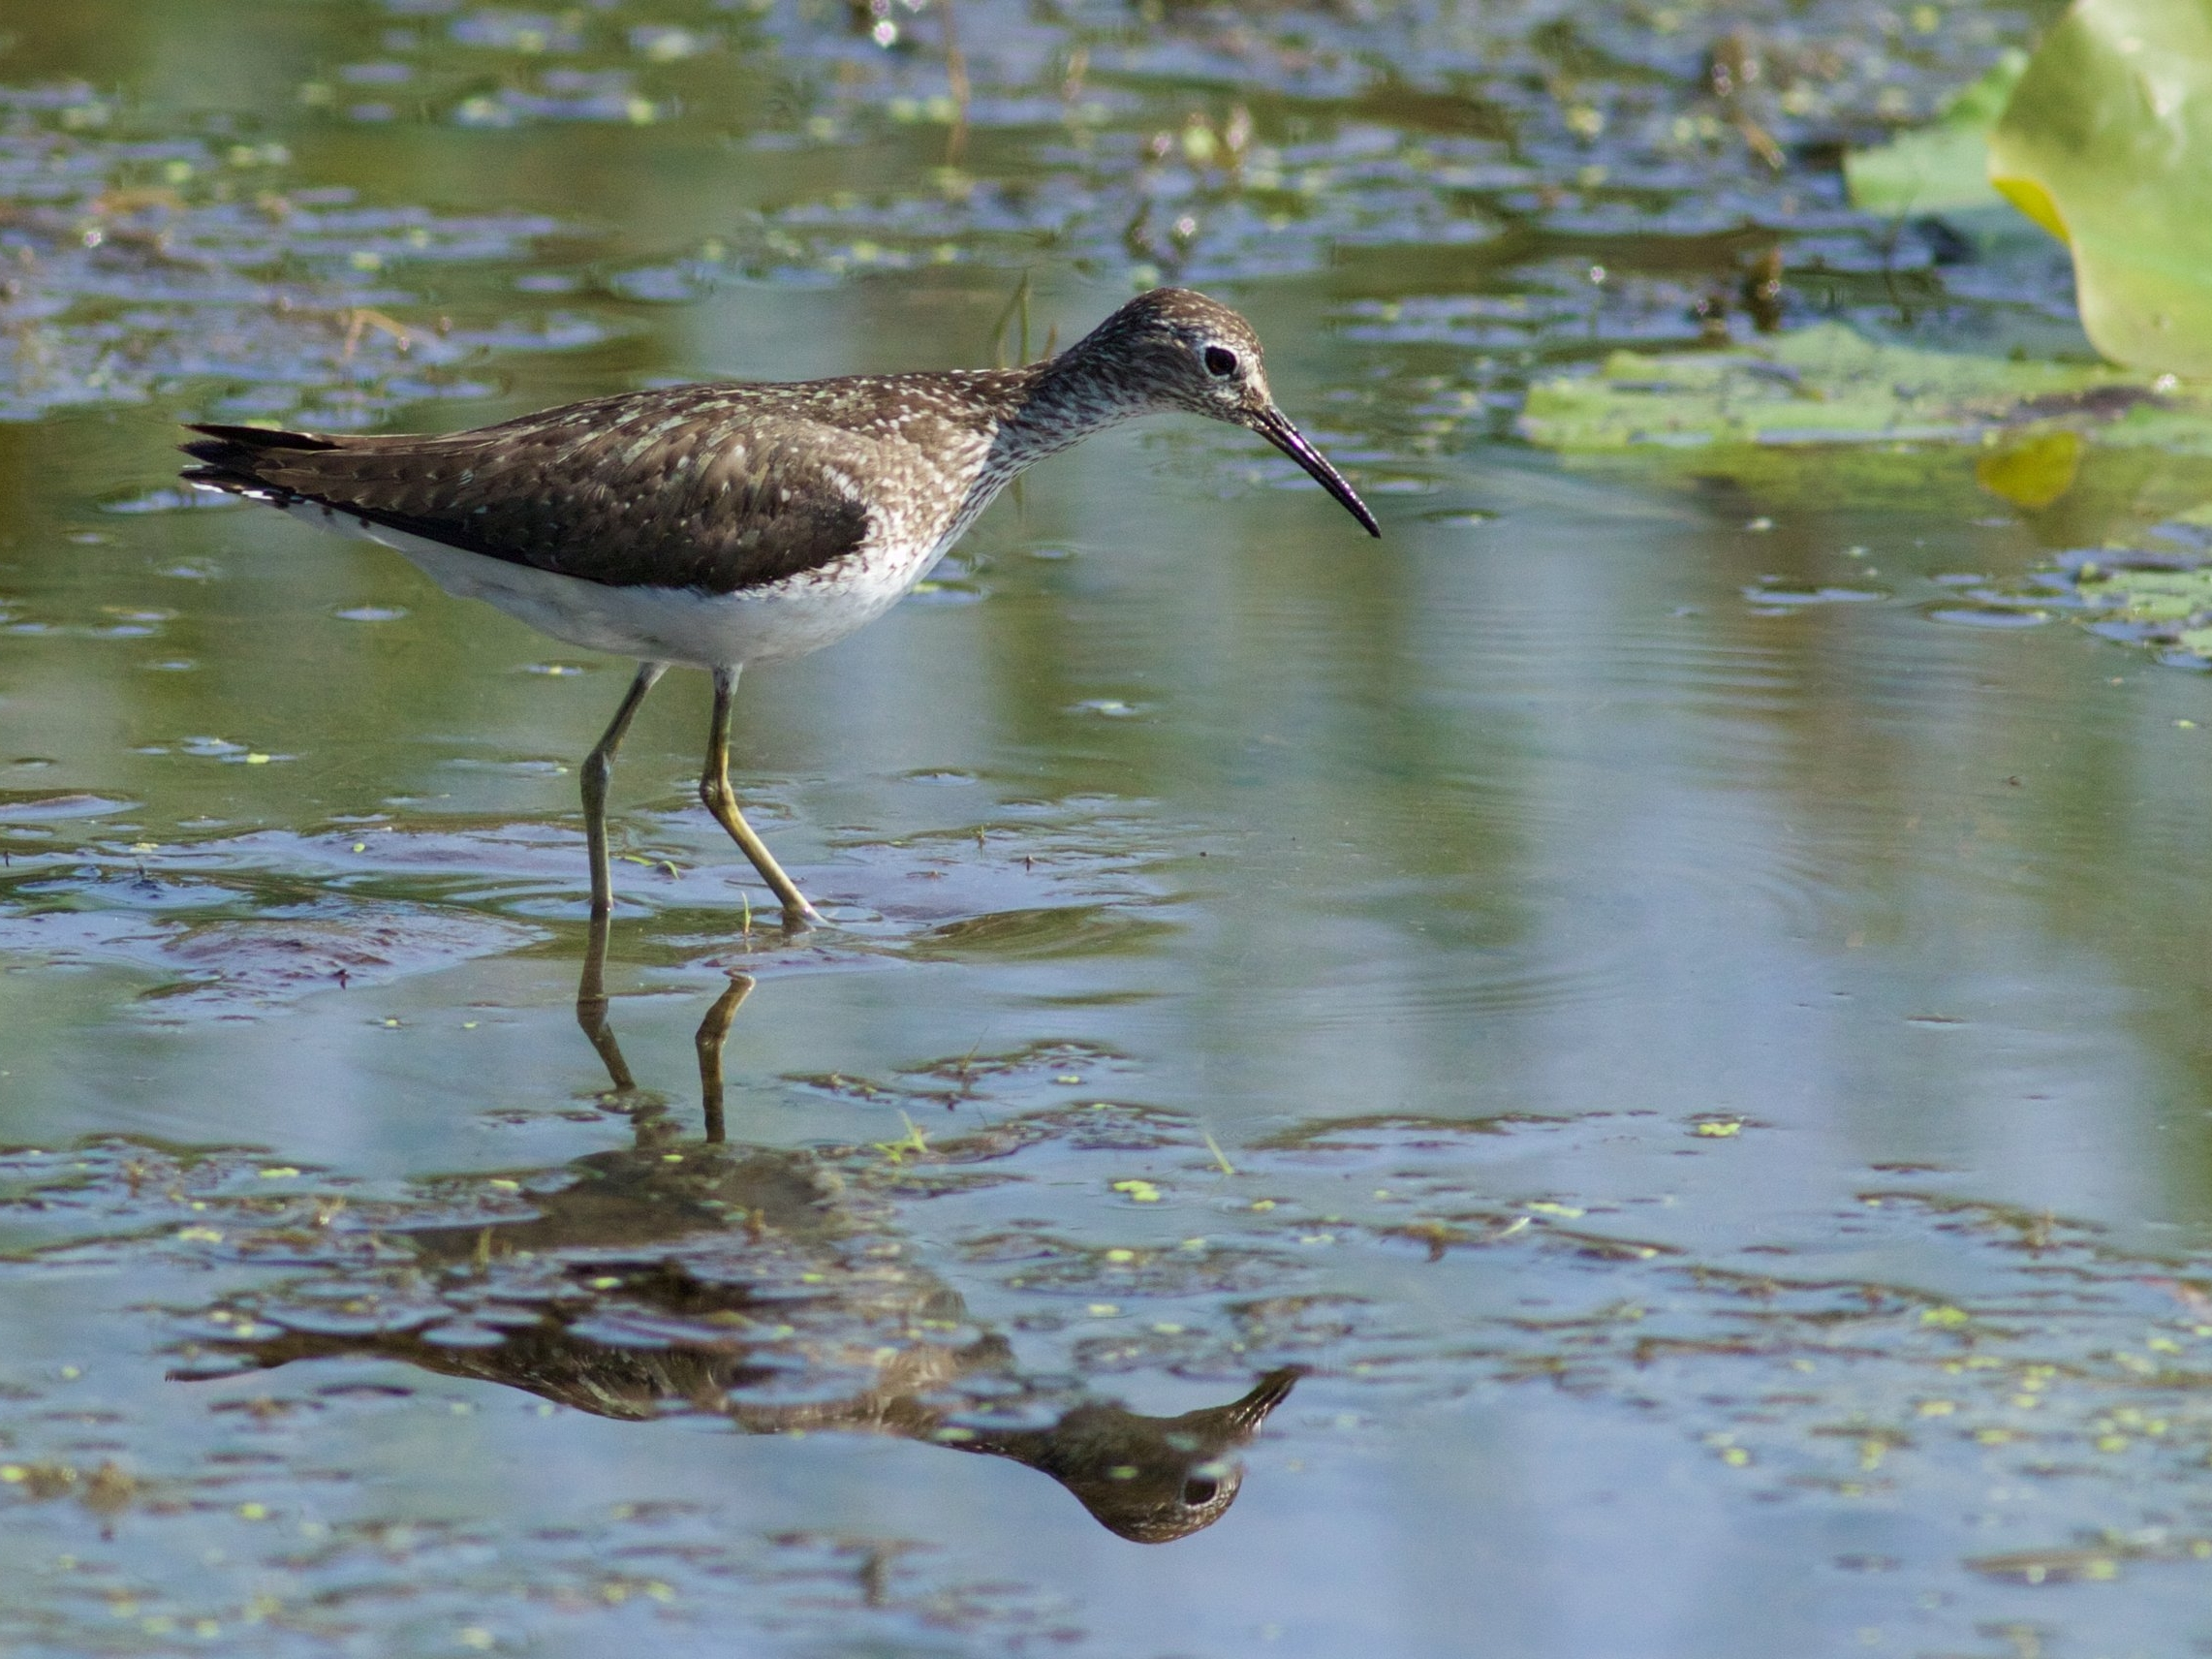 Lesser yellowlegs in Goose Pond. Photo by Arlene Koziol